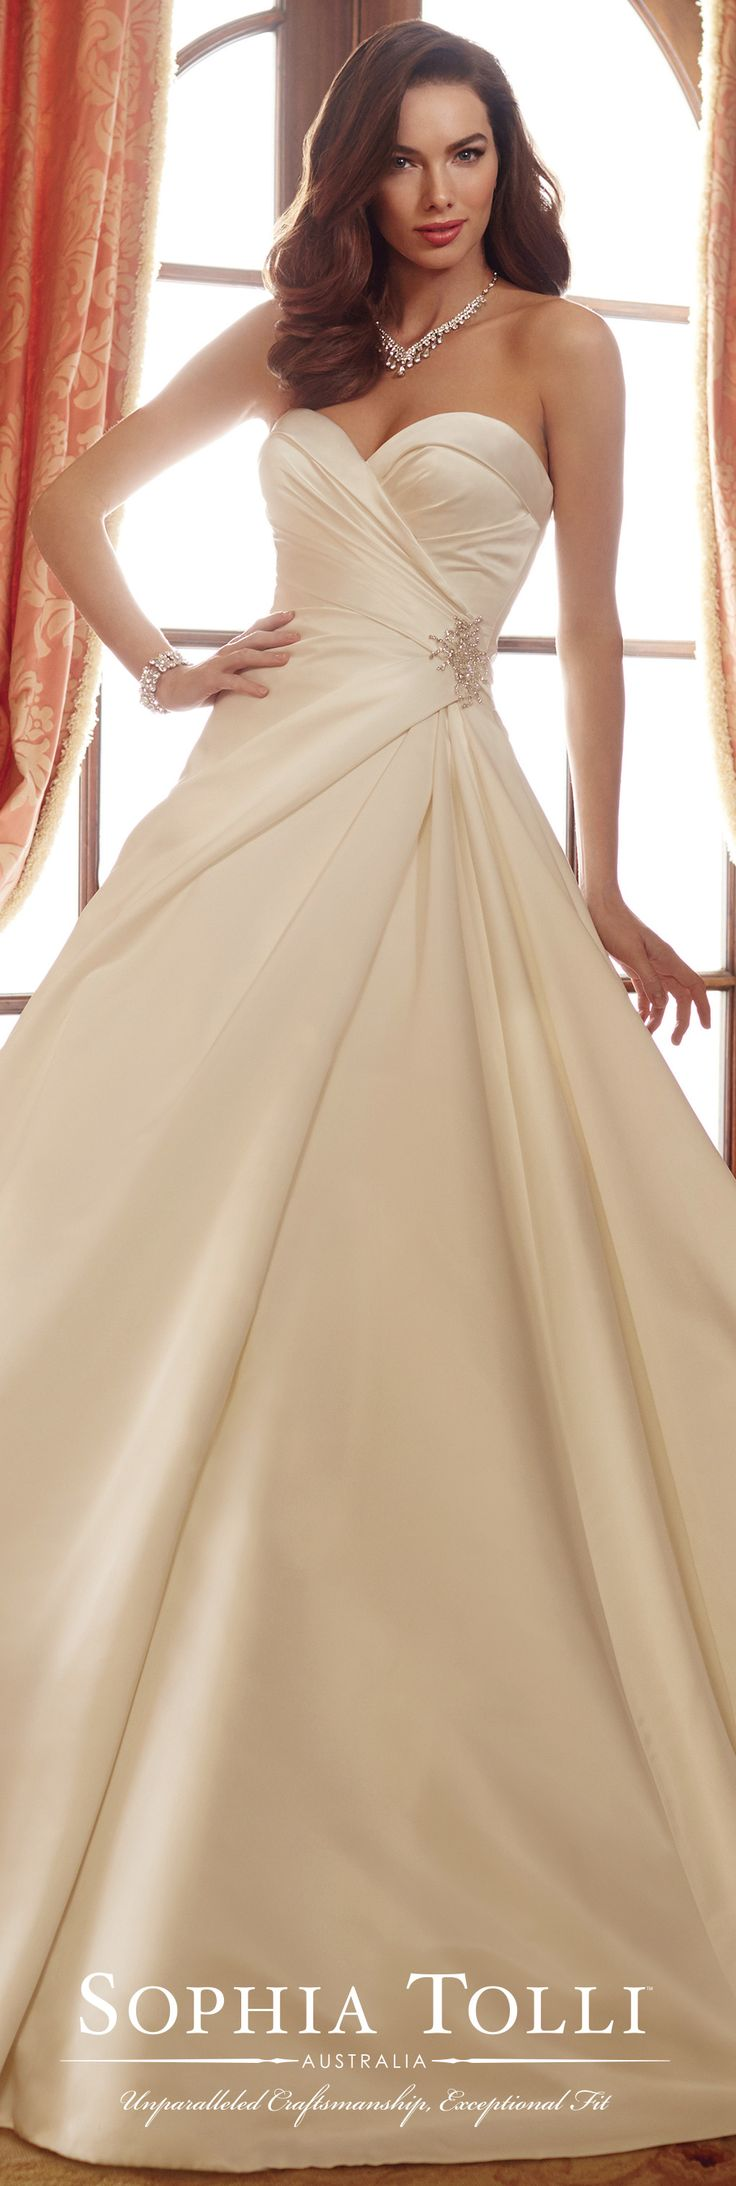 Sophia Tolli Spring 2017 Wedding Gown Collection - Style No. Y11721 Desiree - strapless satin full A-line wedding dress with asymmetrically side draped bodice